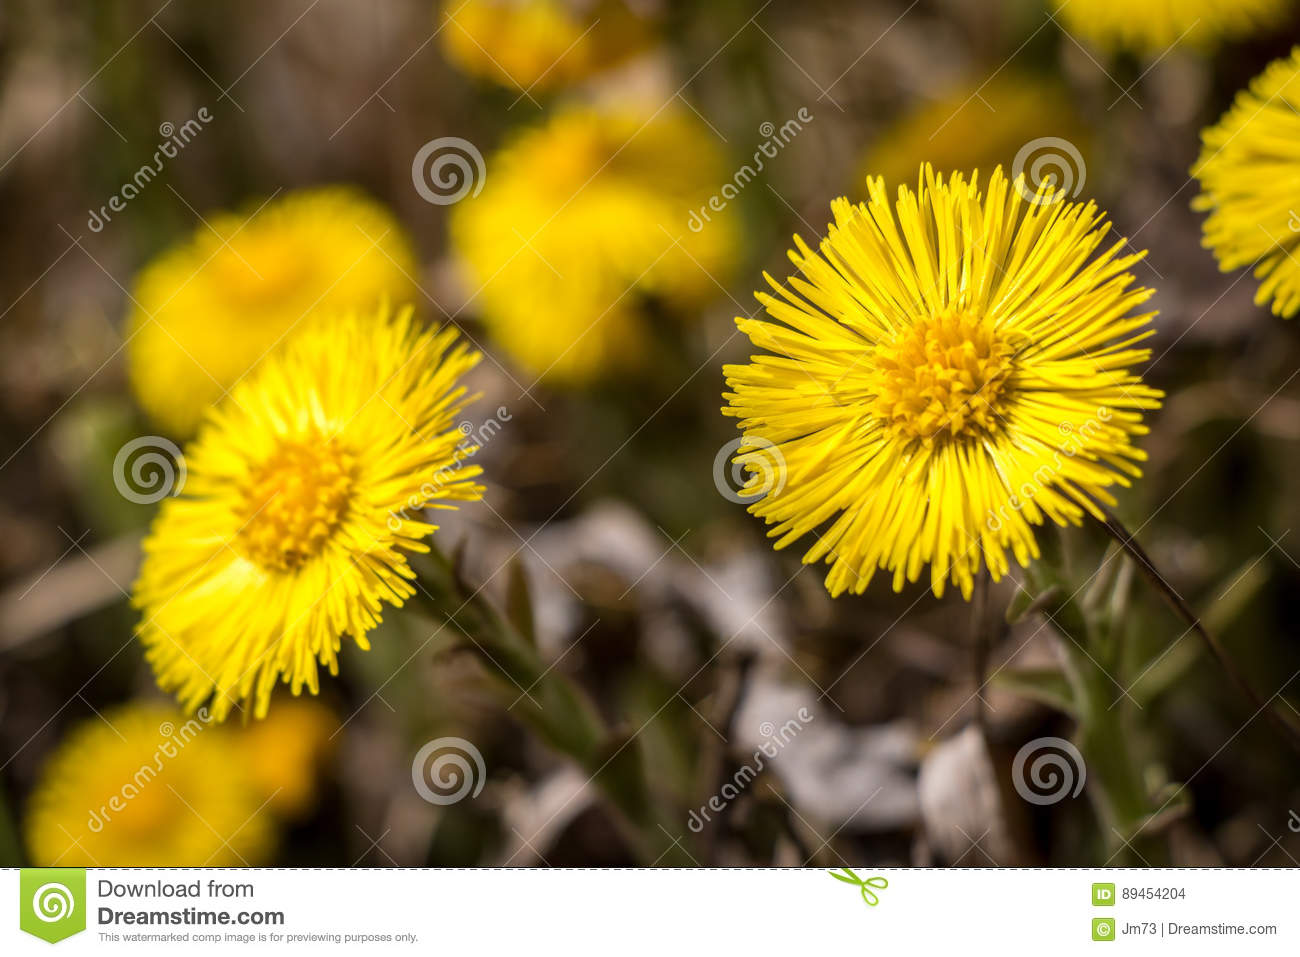 Flowers Of Tussilago Farfara Commonly Known As Coltsfoot Stock Photo